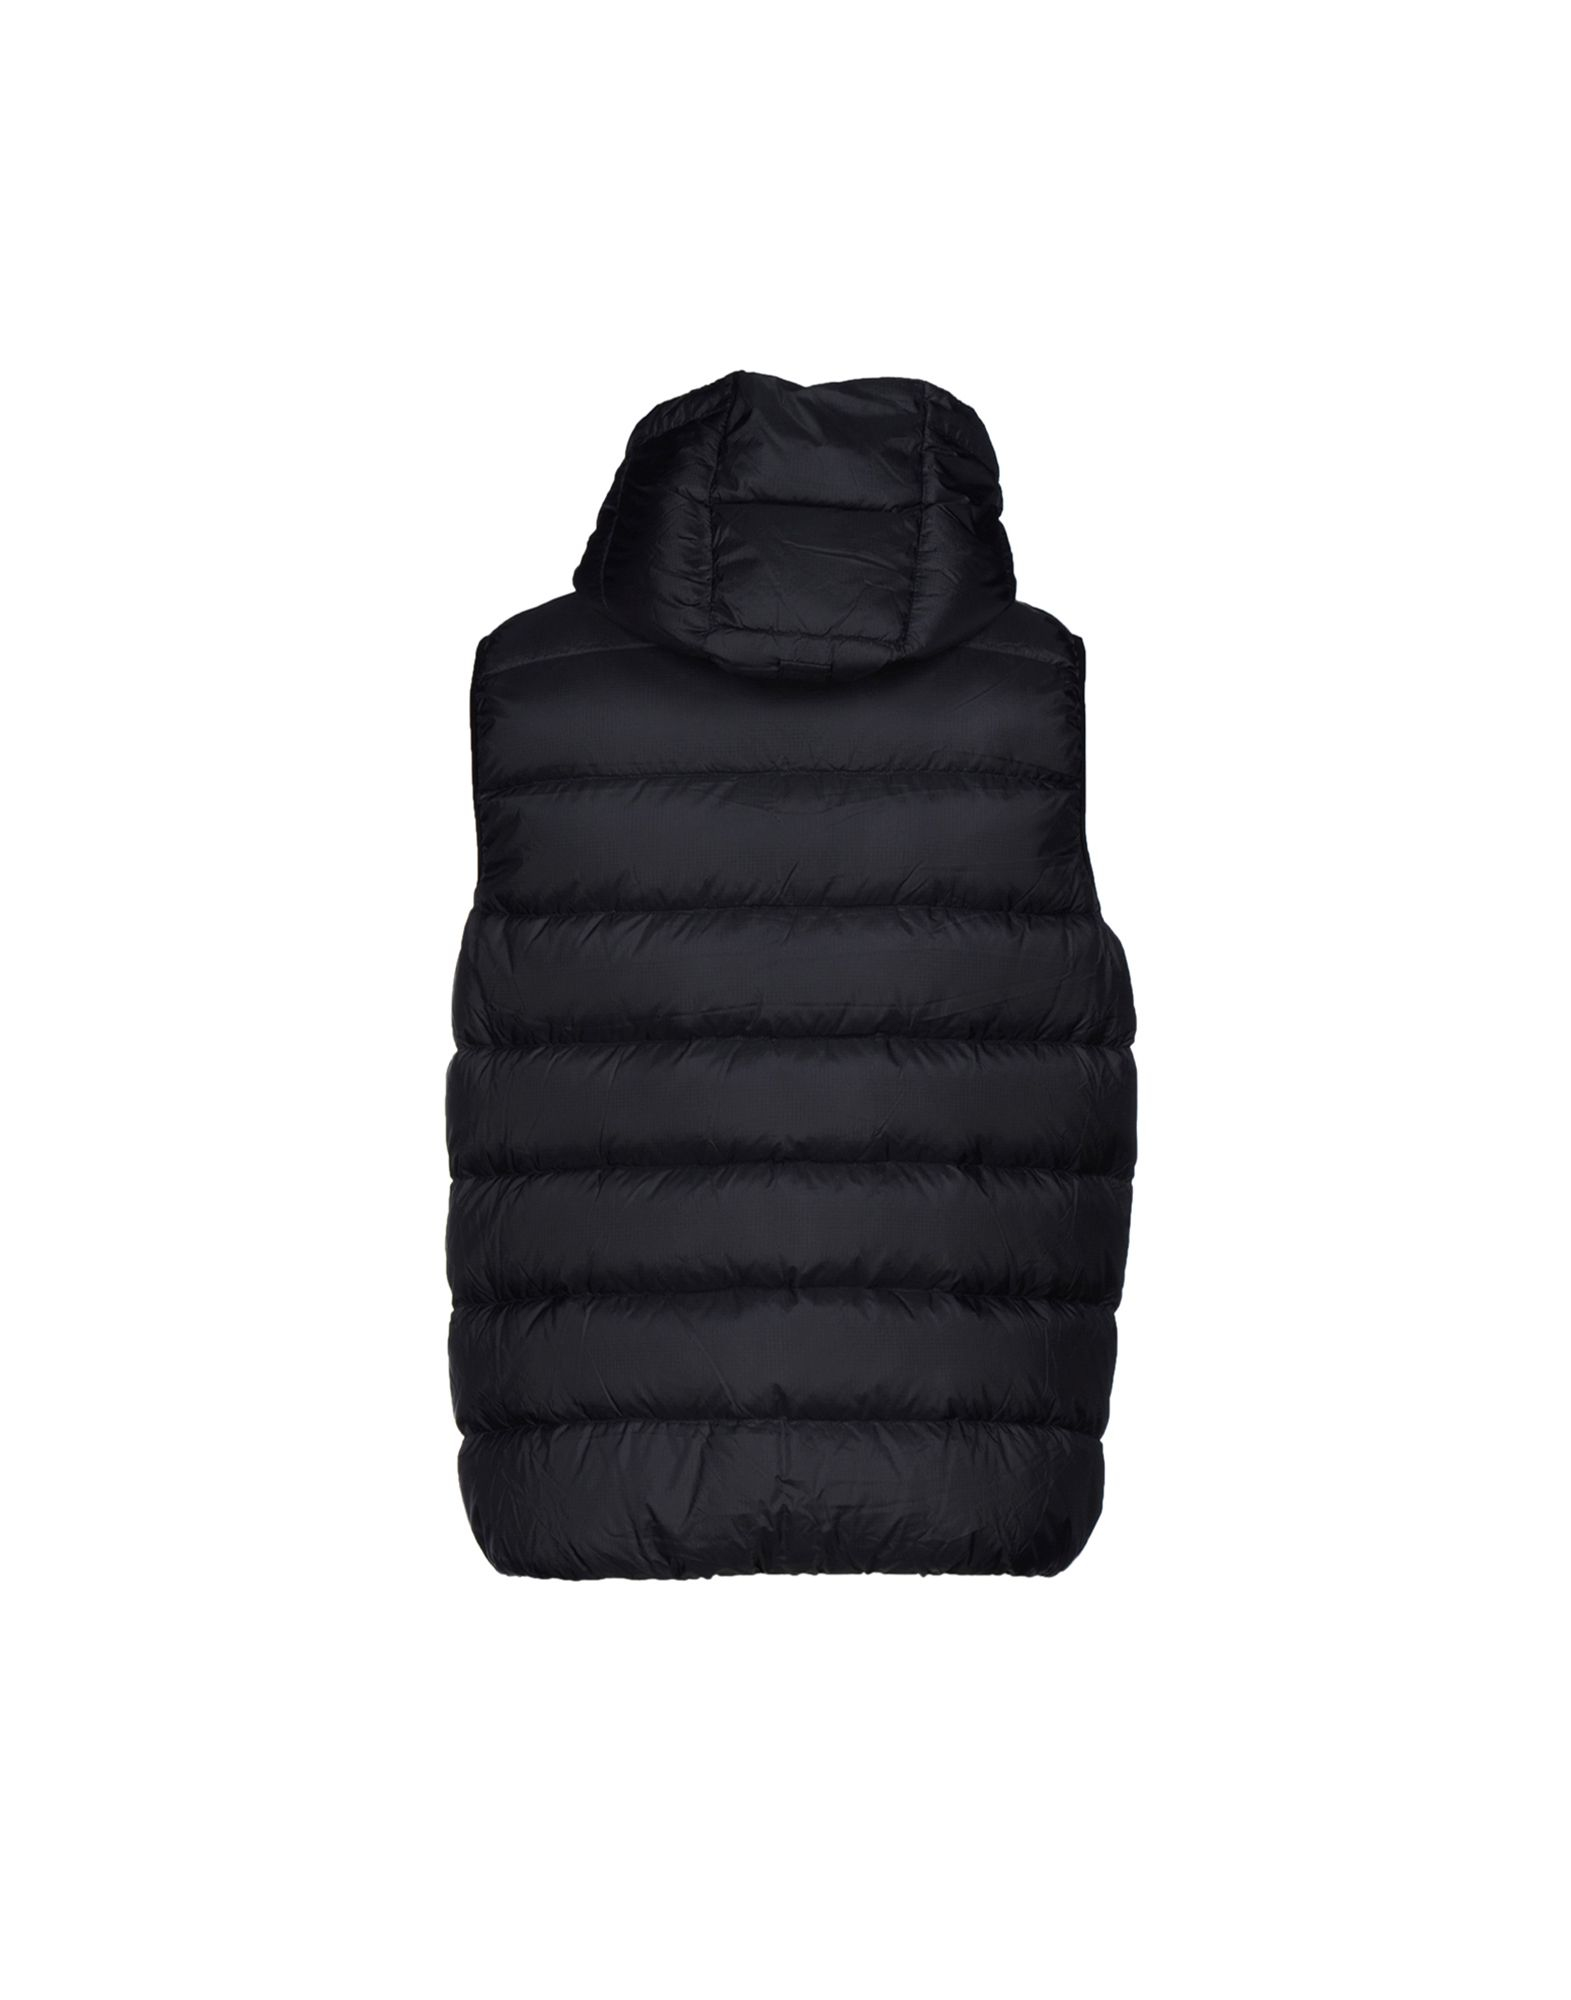 penfield black singles Shop a wide selection of penfield brand clothing & accessories on lyst more than 1000 items to choose from.